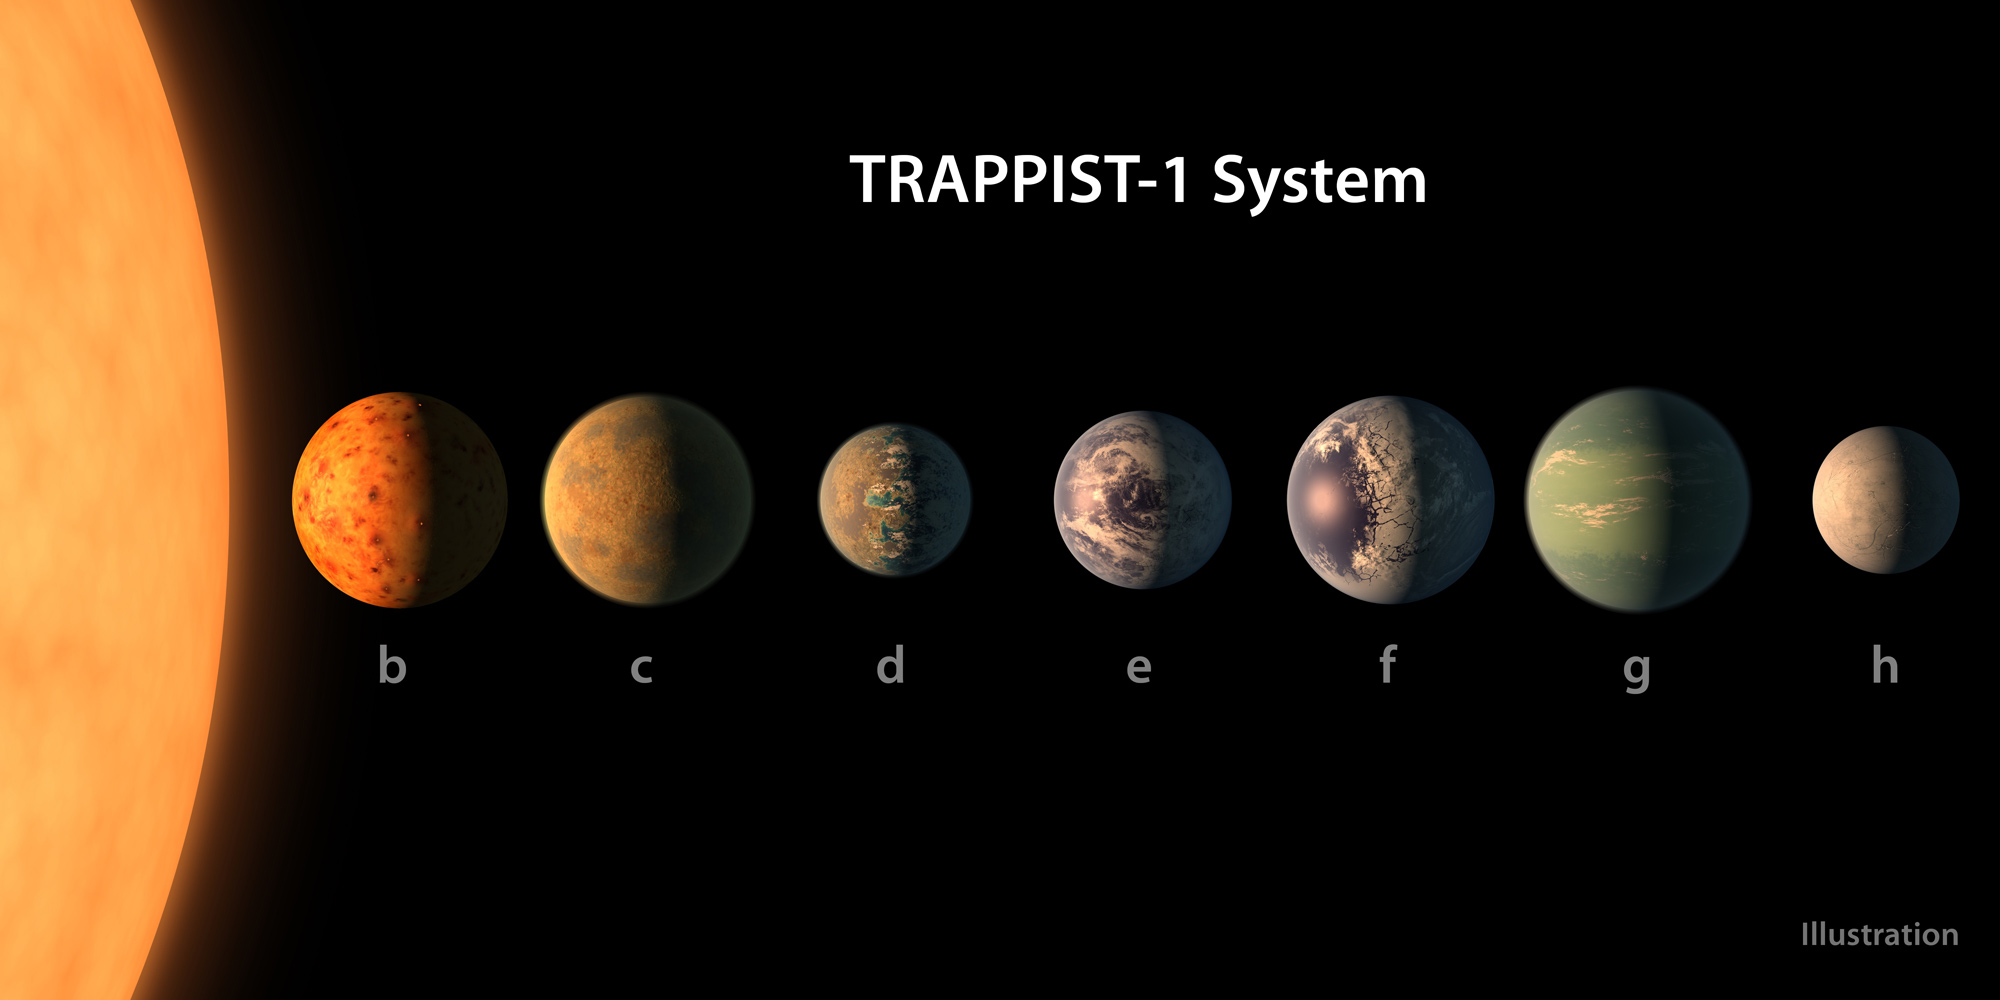 Discovery of 7 Earth-Size Exoplanets a 'Giant Leap' Forward in Alien-Life Hunt